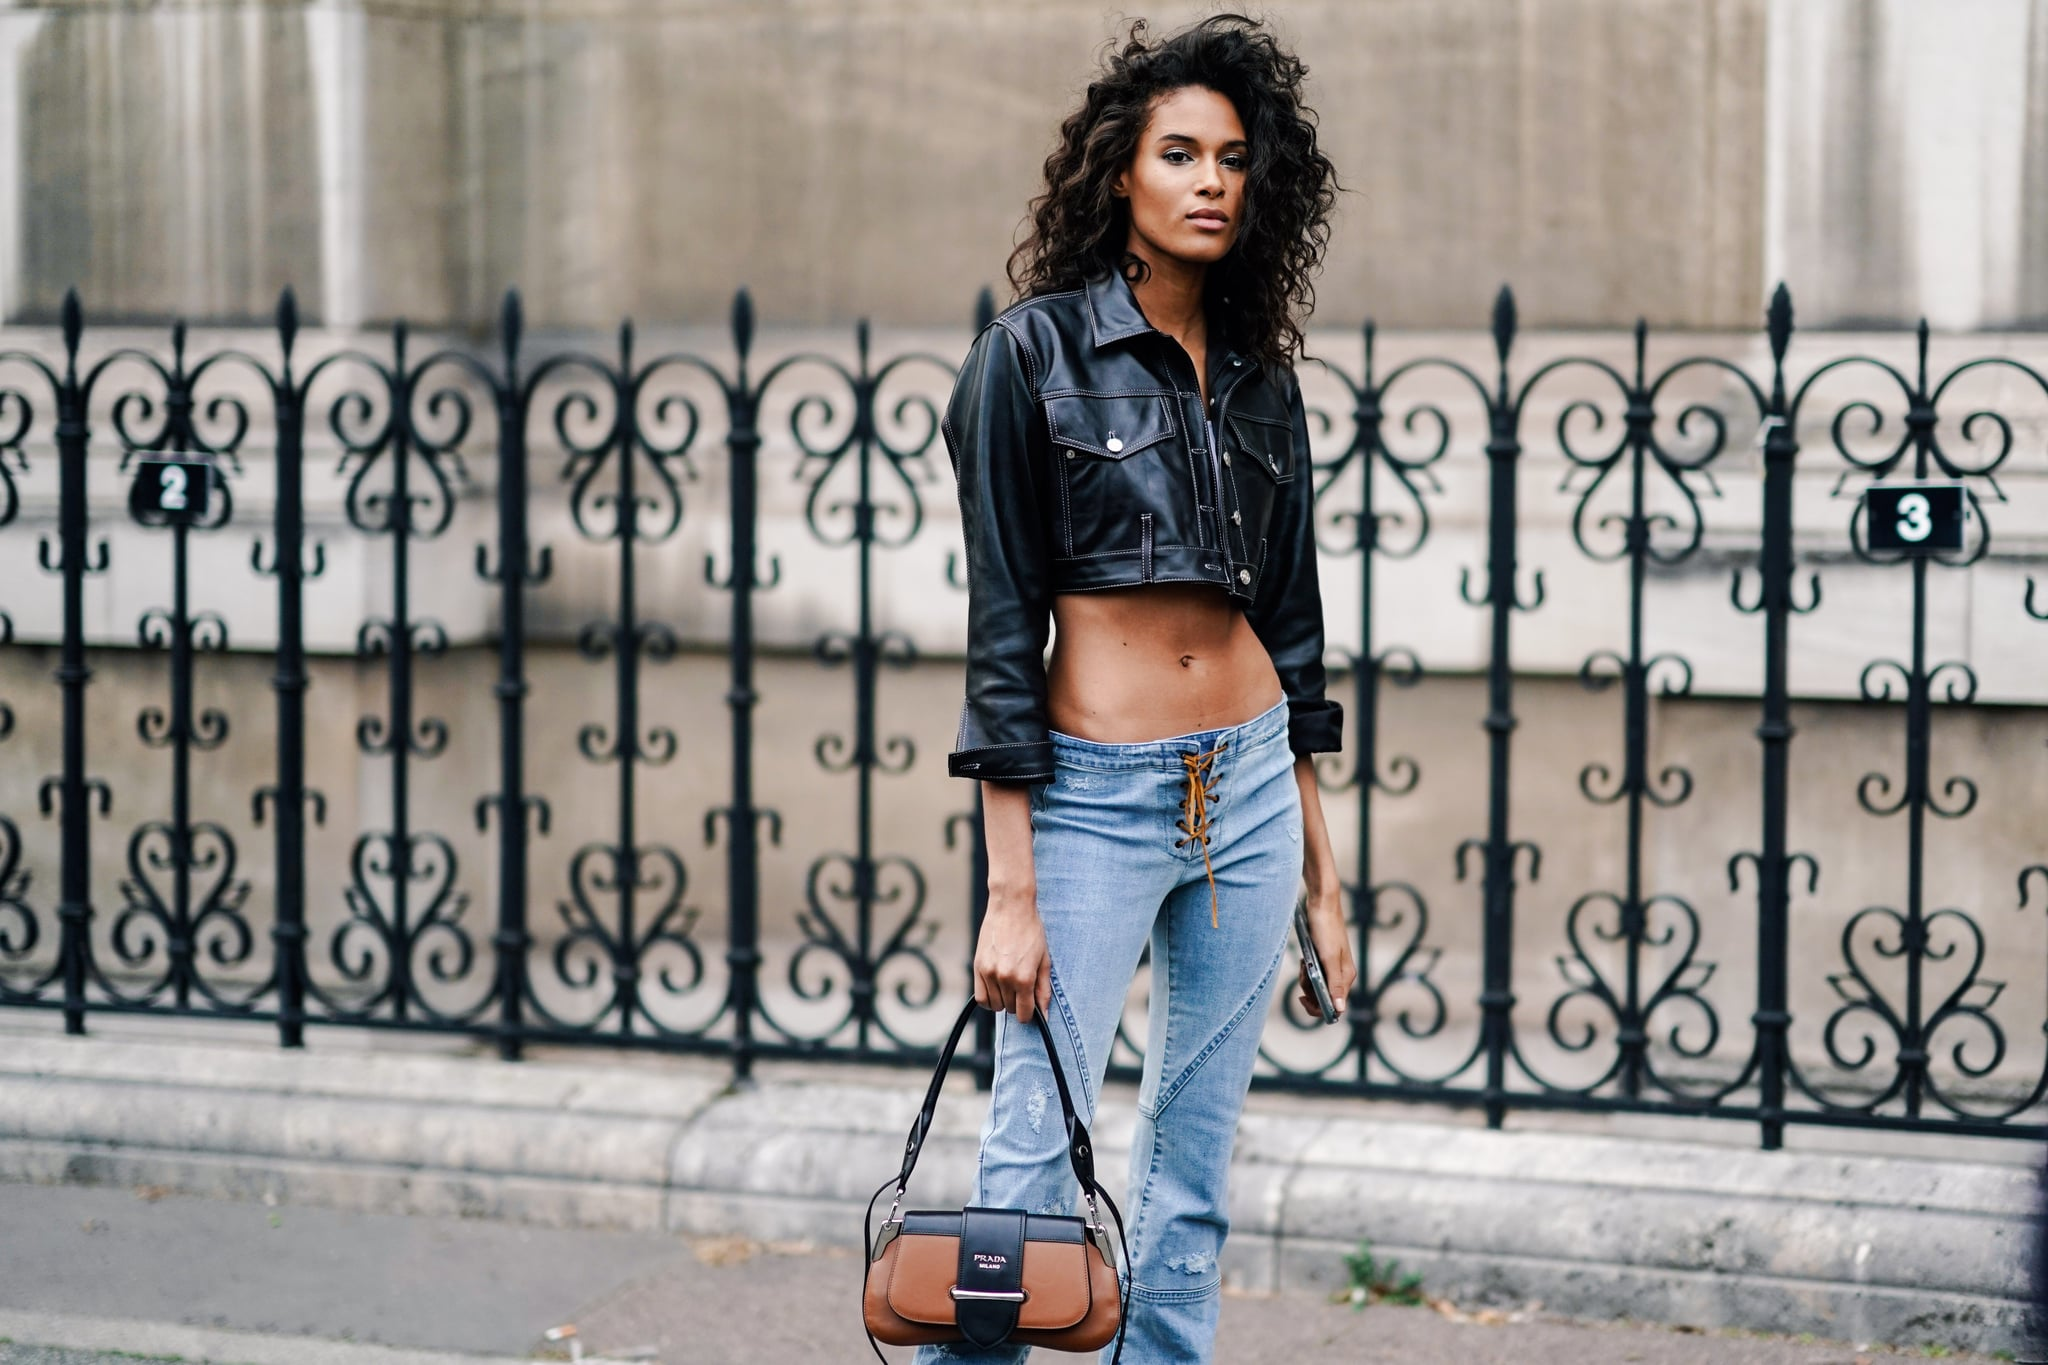 PARIS, FRANCE - FEBRUARY 28: Cindy Bruna wears a black leather crop jacket, blue lace up low waist jeans, a brown Prada bag, outside Redemption, during Paris Fashion Week Womenswear Fall/Winter 2019/2020, on February 28, 2019 in Paris, France. (Photo by Edward Berthelot/Getty Images)